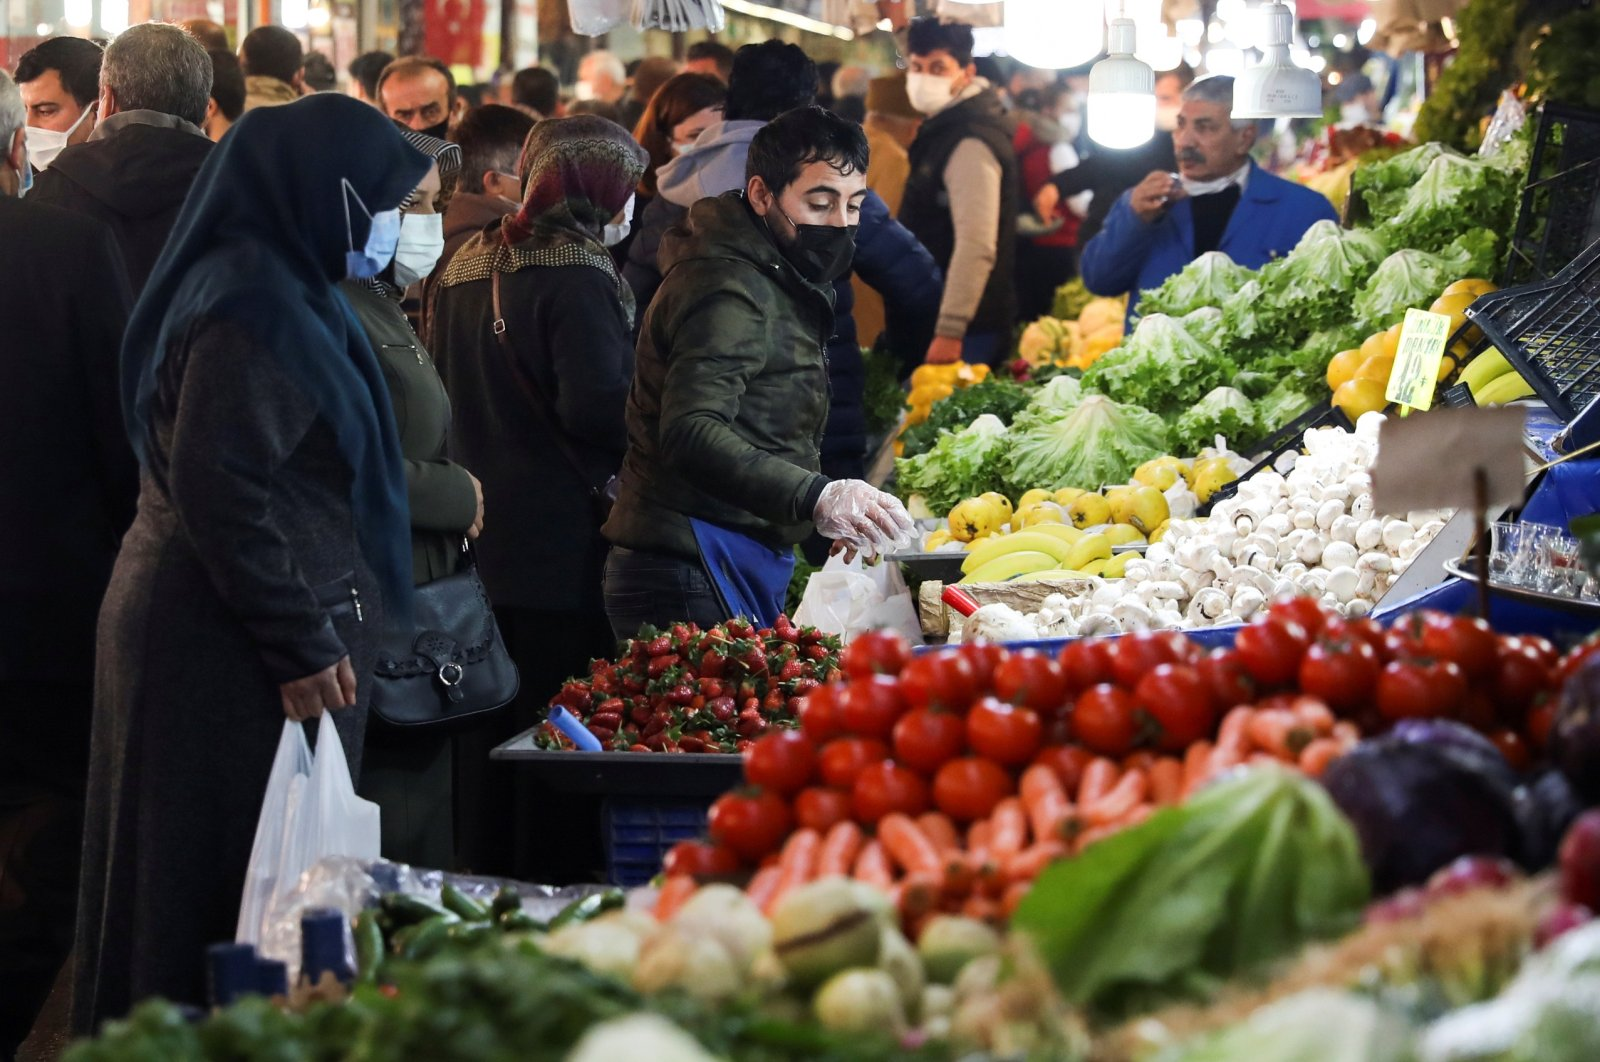 People wearing protective masks shop at a local market amid the COVID-19 outbreak in Ankara, Turkey Feb. 24, 2021. (Reuters Photo)